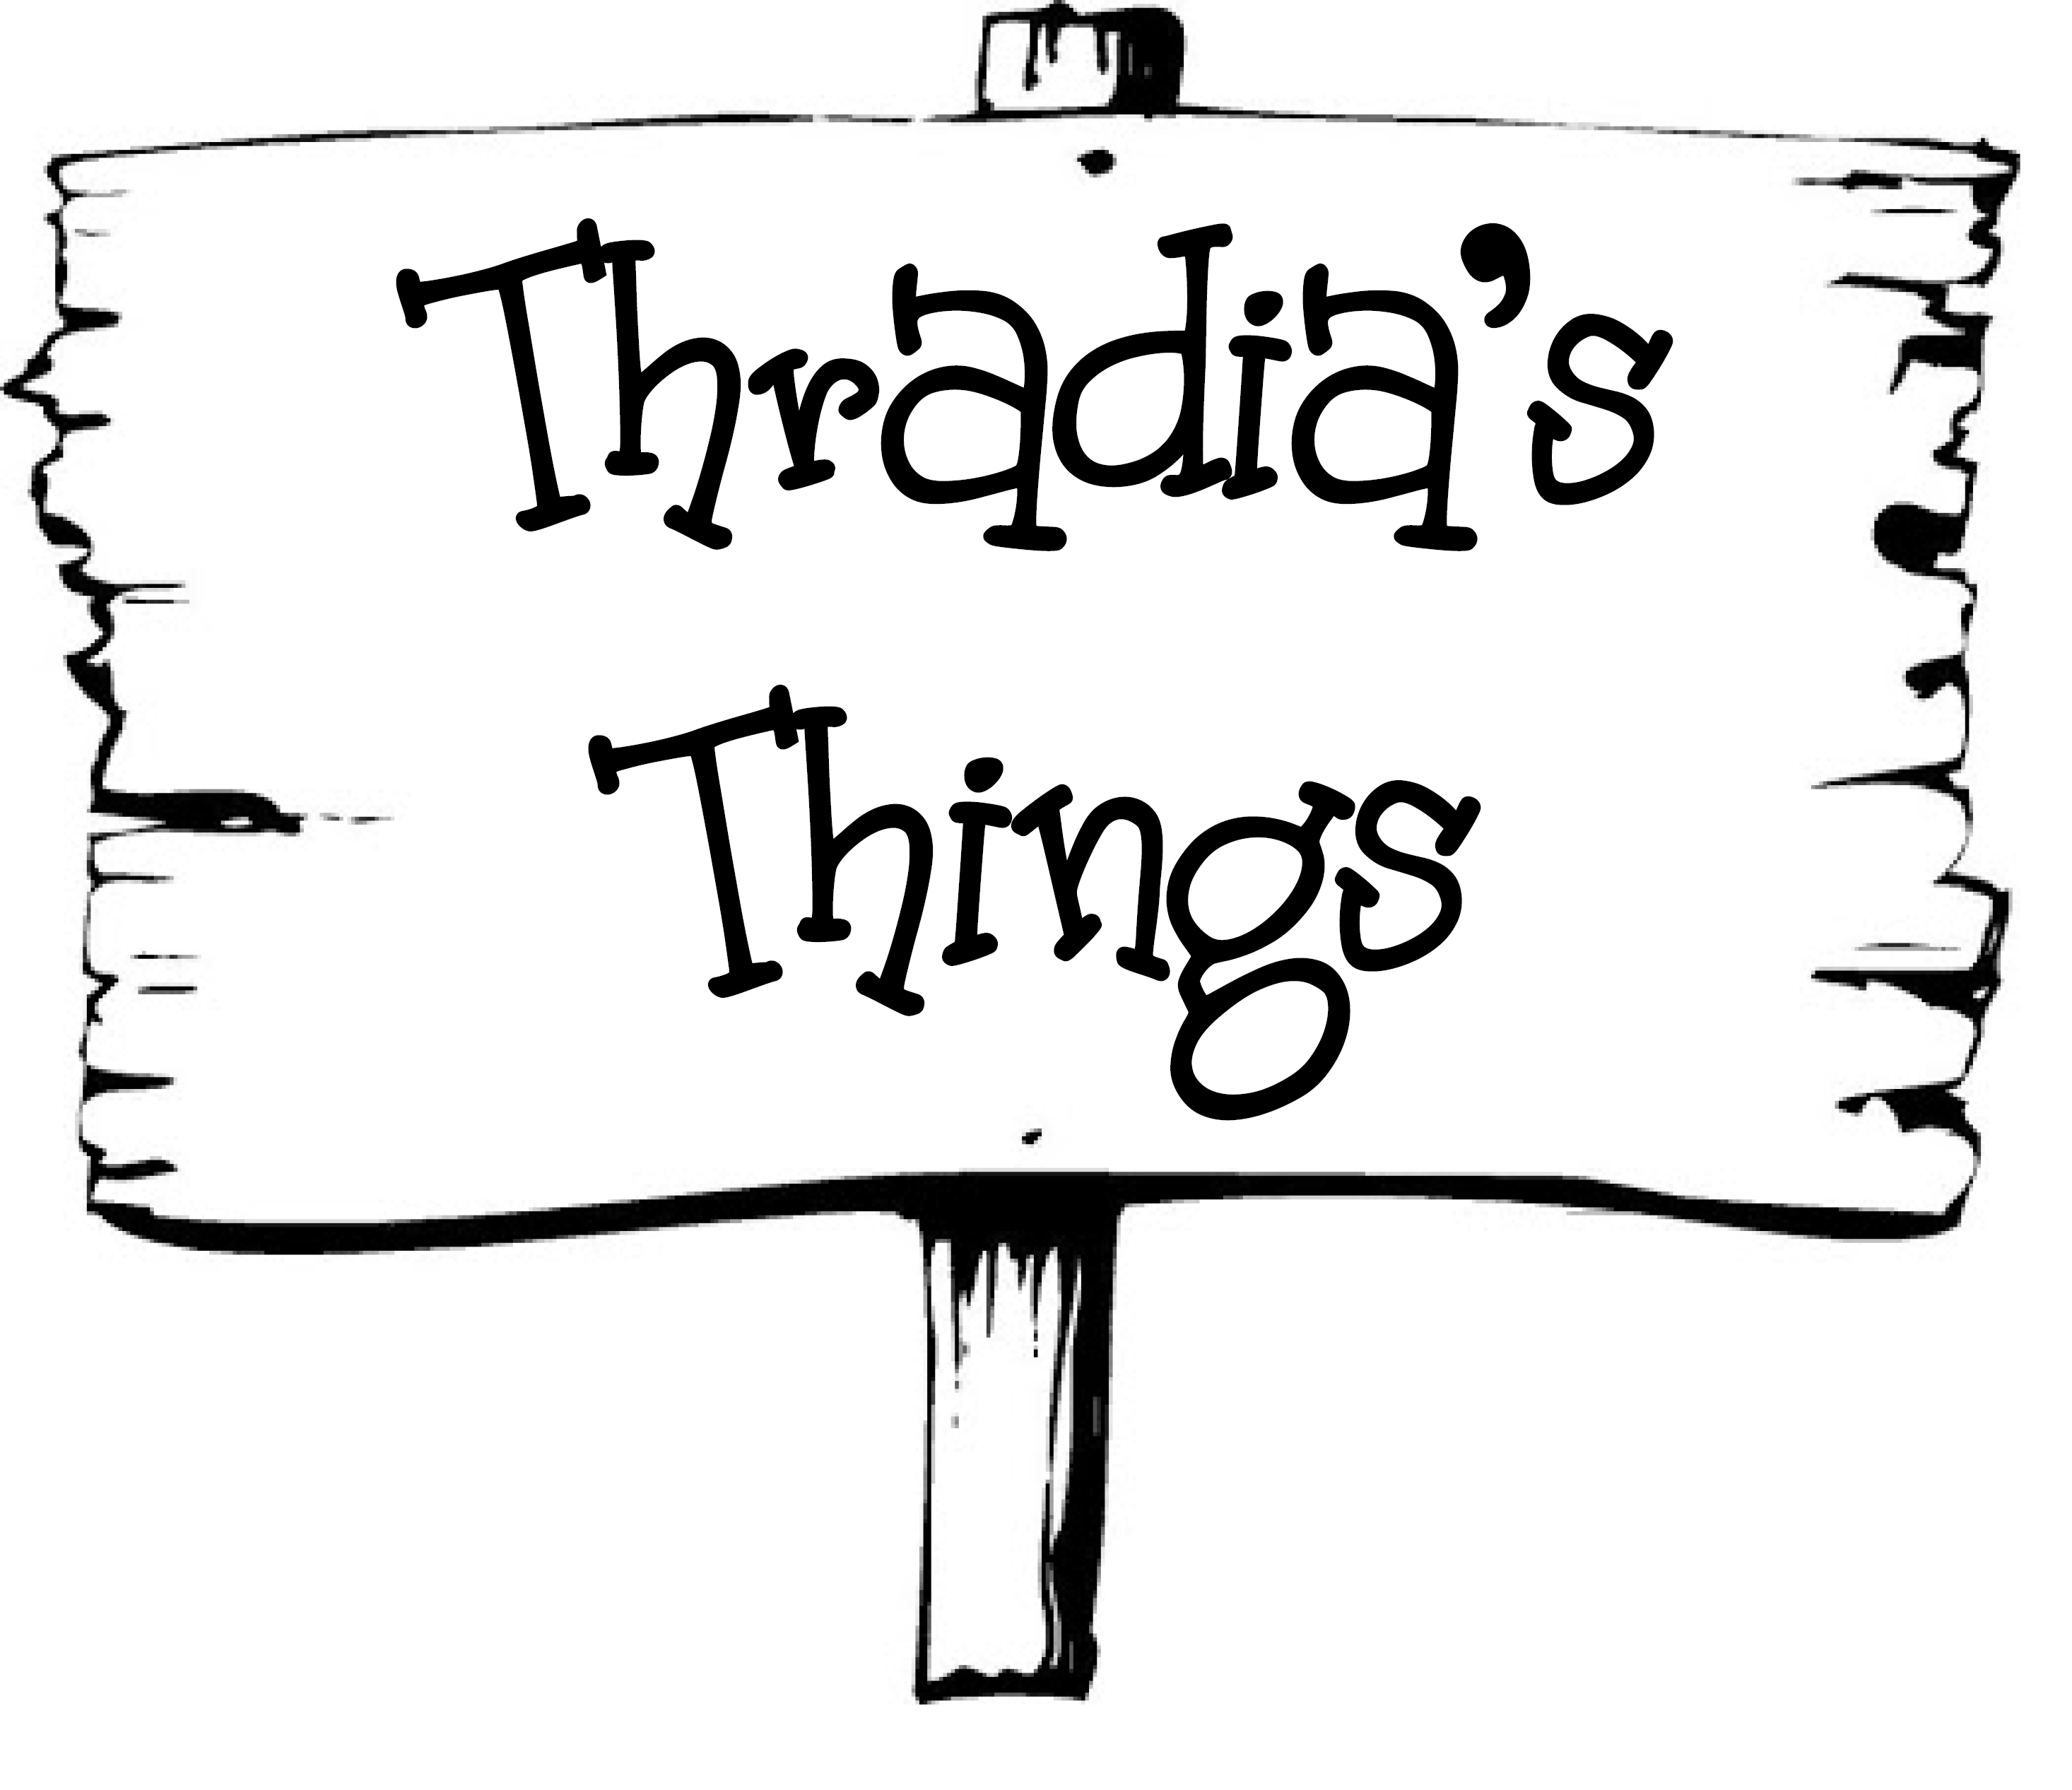 Thradia's Things